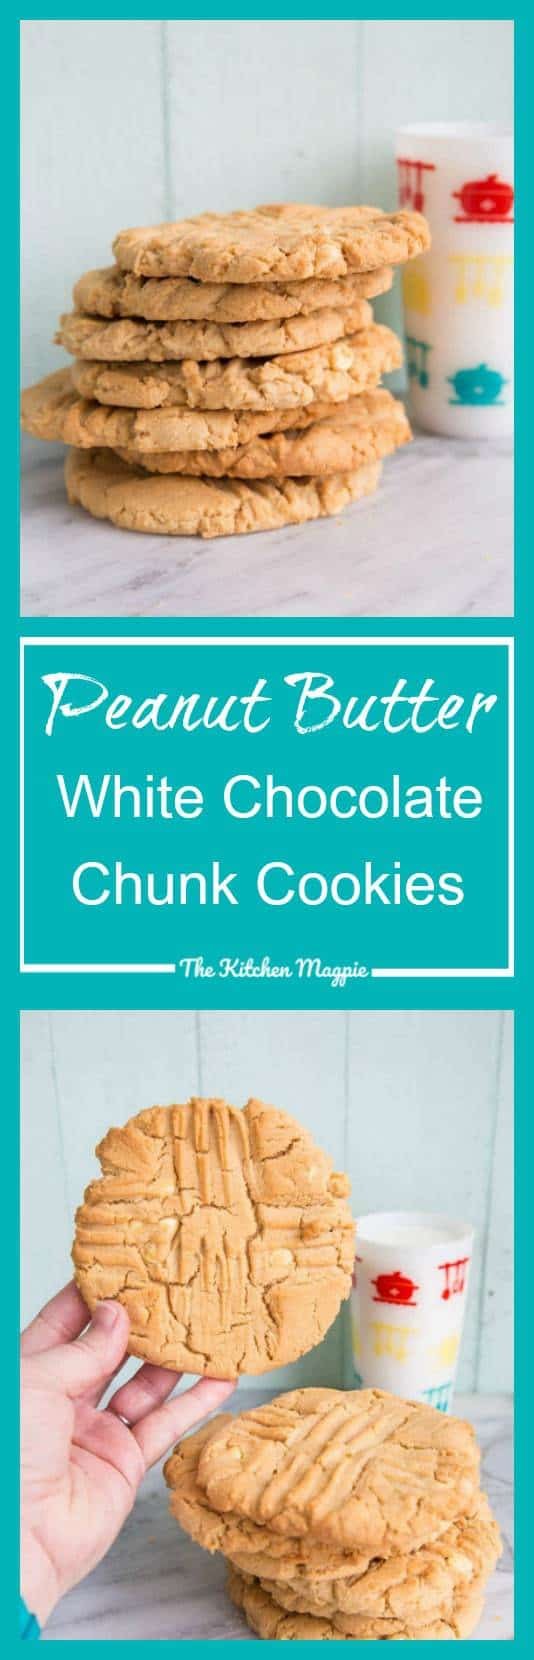 Double Peanut Butter White Chocolate Chunk Cookies from @kitchenmagpie